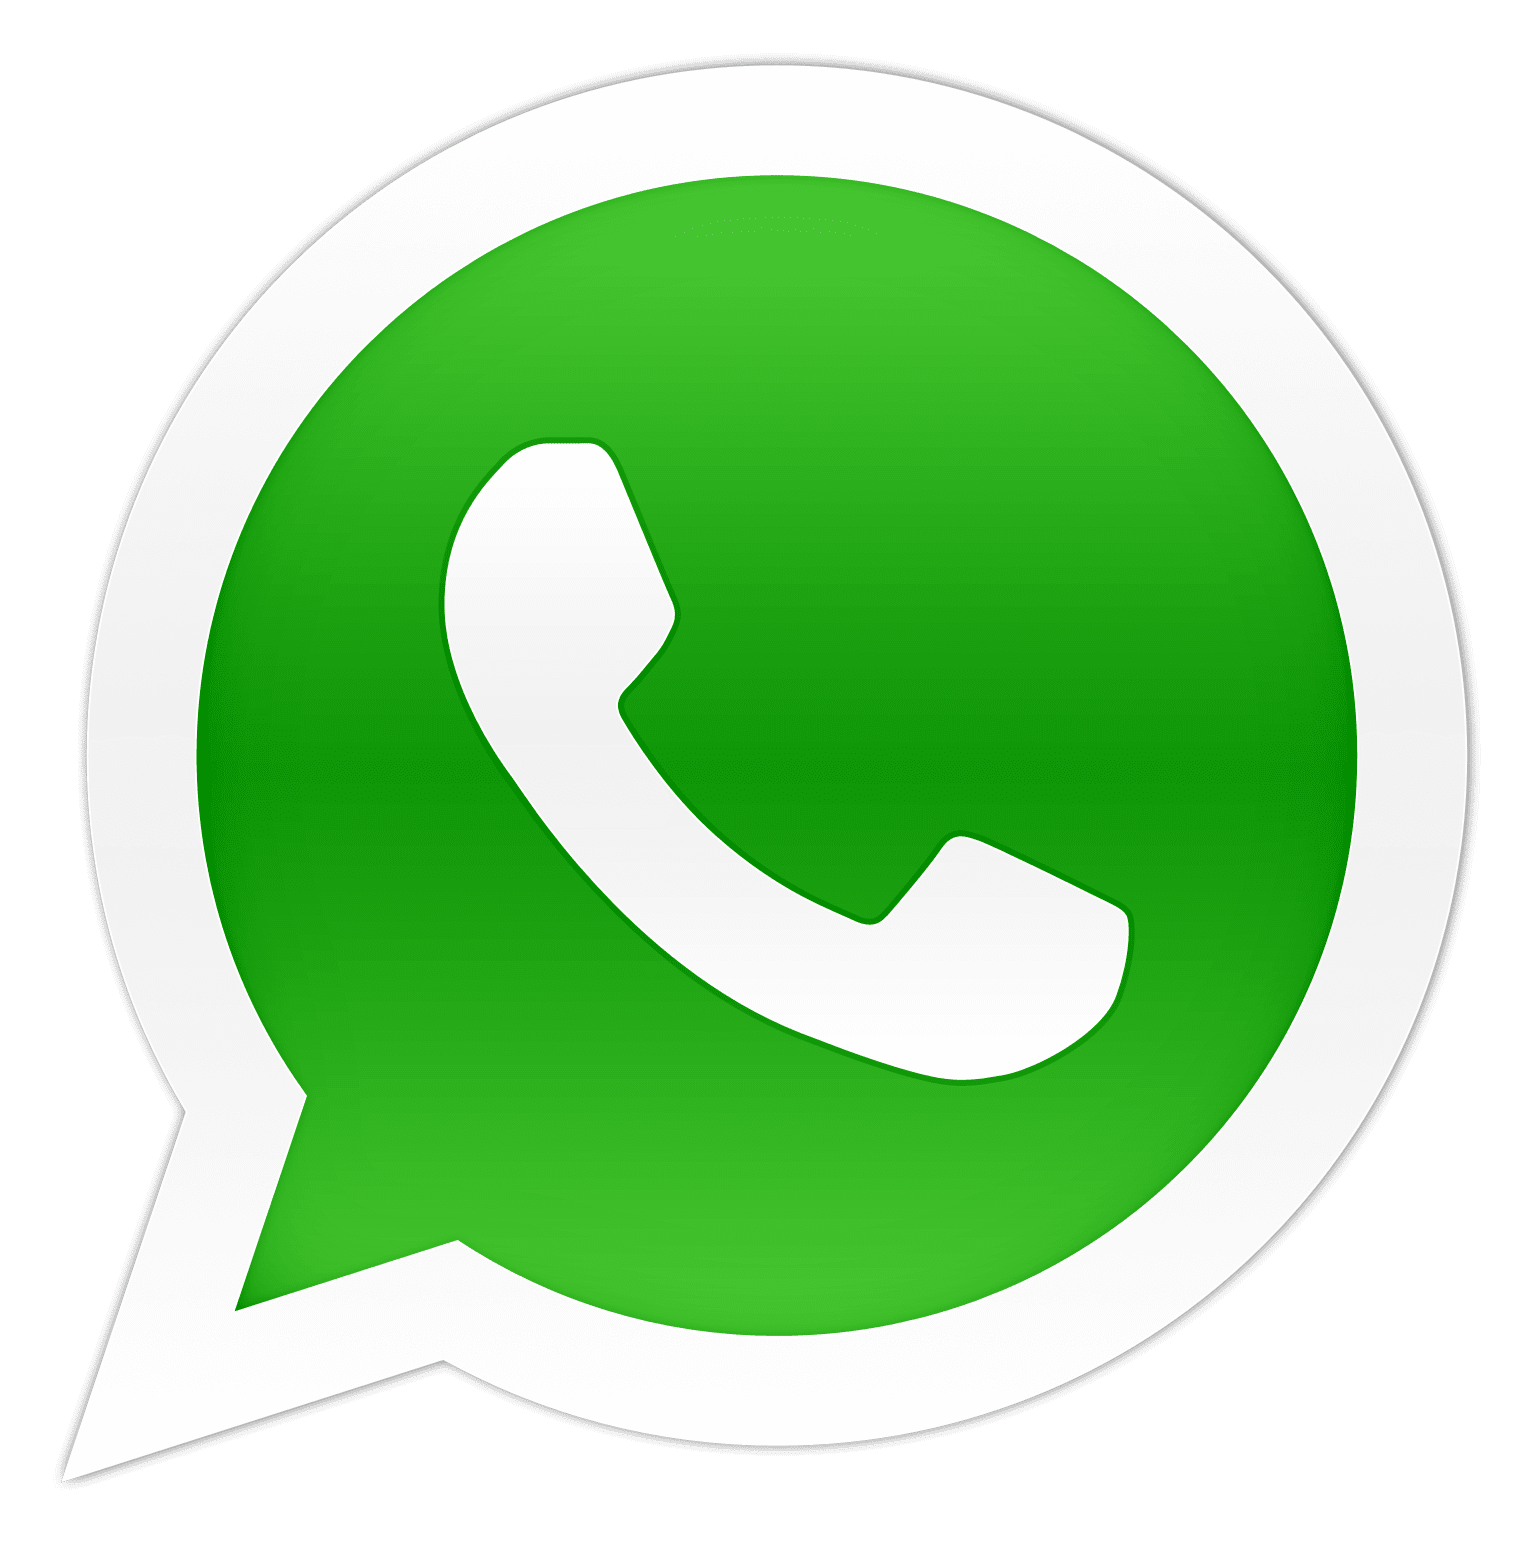 How to deactivate whatsapp group invitation link androliberty 1 you should be an admin of that group where you are going to deactivate the invitation link 2 download and install whatsapp prime or latest gbwhatsapp stopboris Choice Image